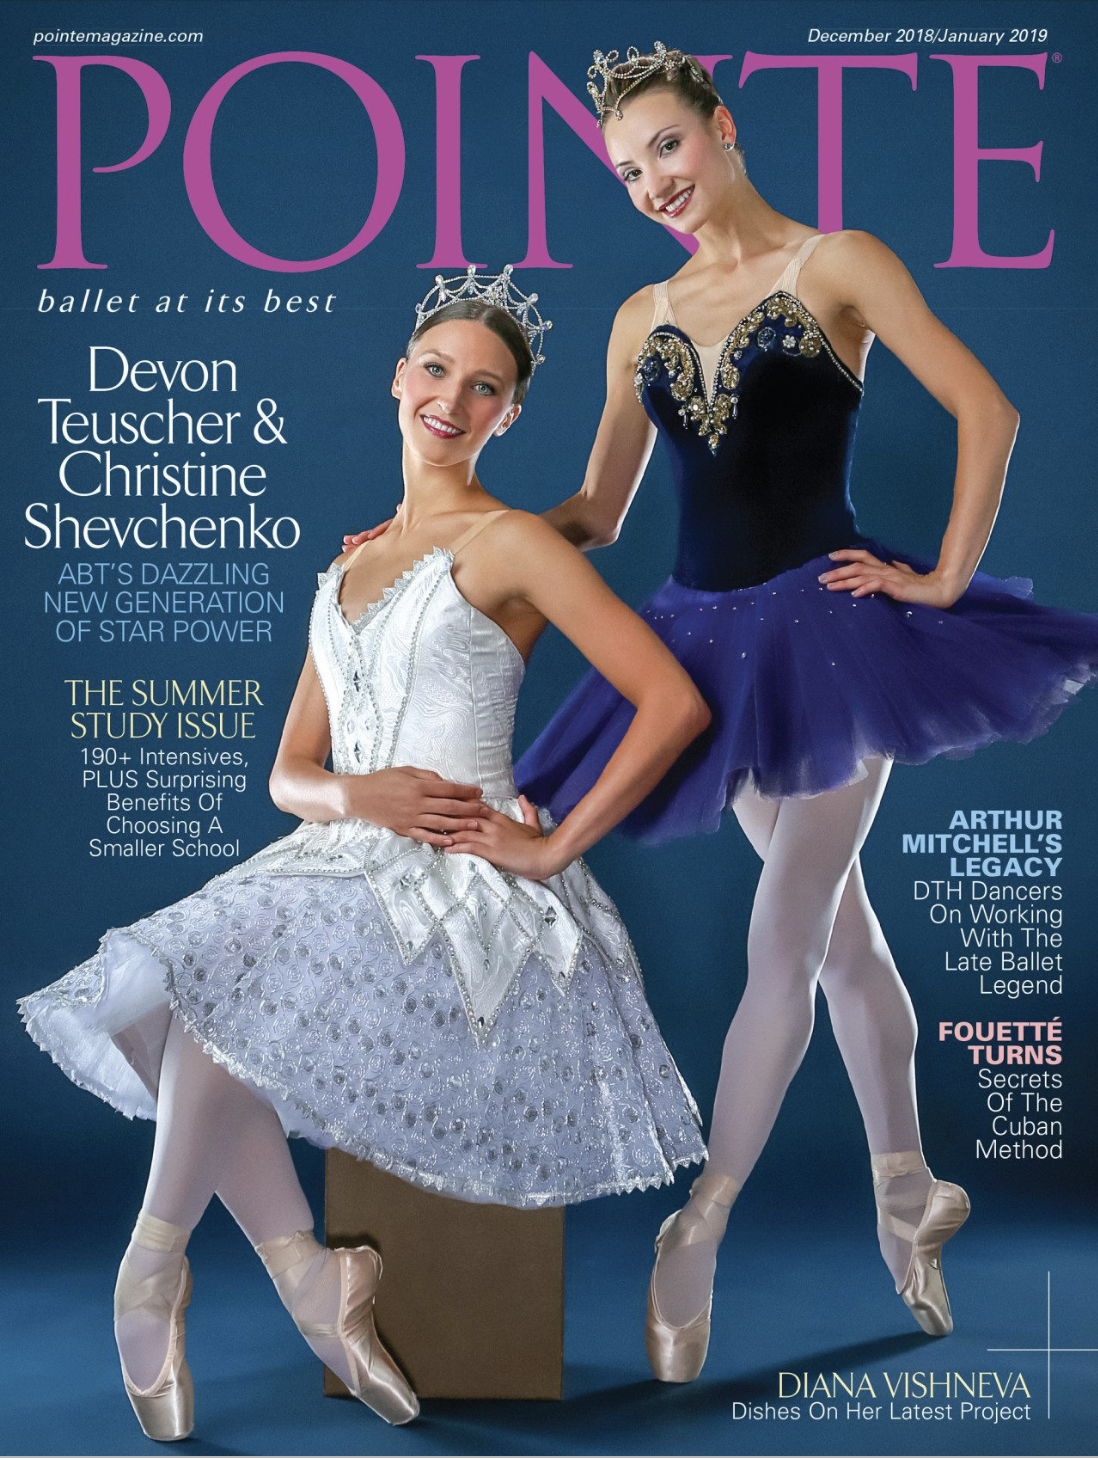 "Rock Alumna, Christine Schevchenko and her DAZZLING Pointe Magazine Cover.  Christine was featured on the November issue of Pointe Magazine alongside fellow American Ballet Theatre dancer, Devon Teuscher as the ""Dazzling New Generation of Star Power"" 💫💫  In the featured article, Christine even shares what she loves most about dancing: ""For me, it's always been about bringing happiness to the people who come to see these stories. It's about making people happy."""